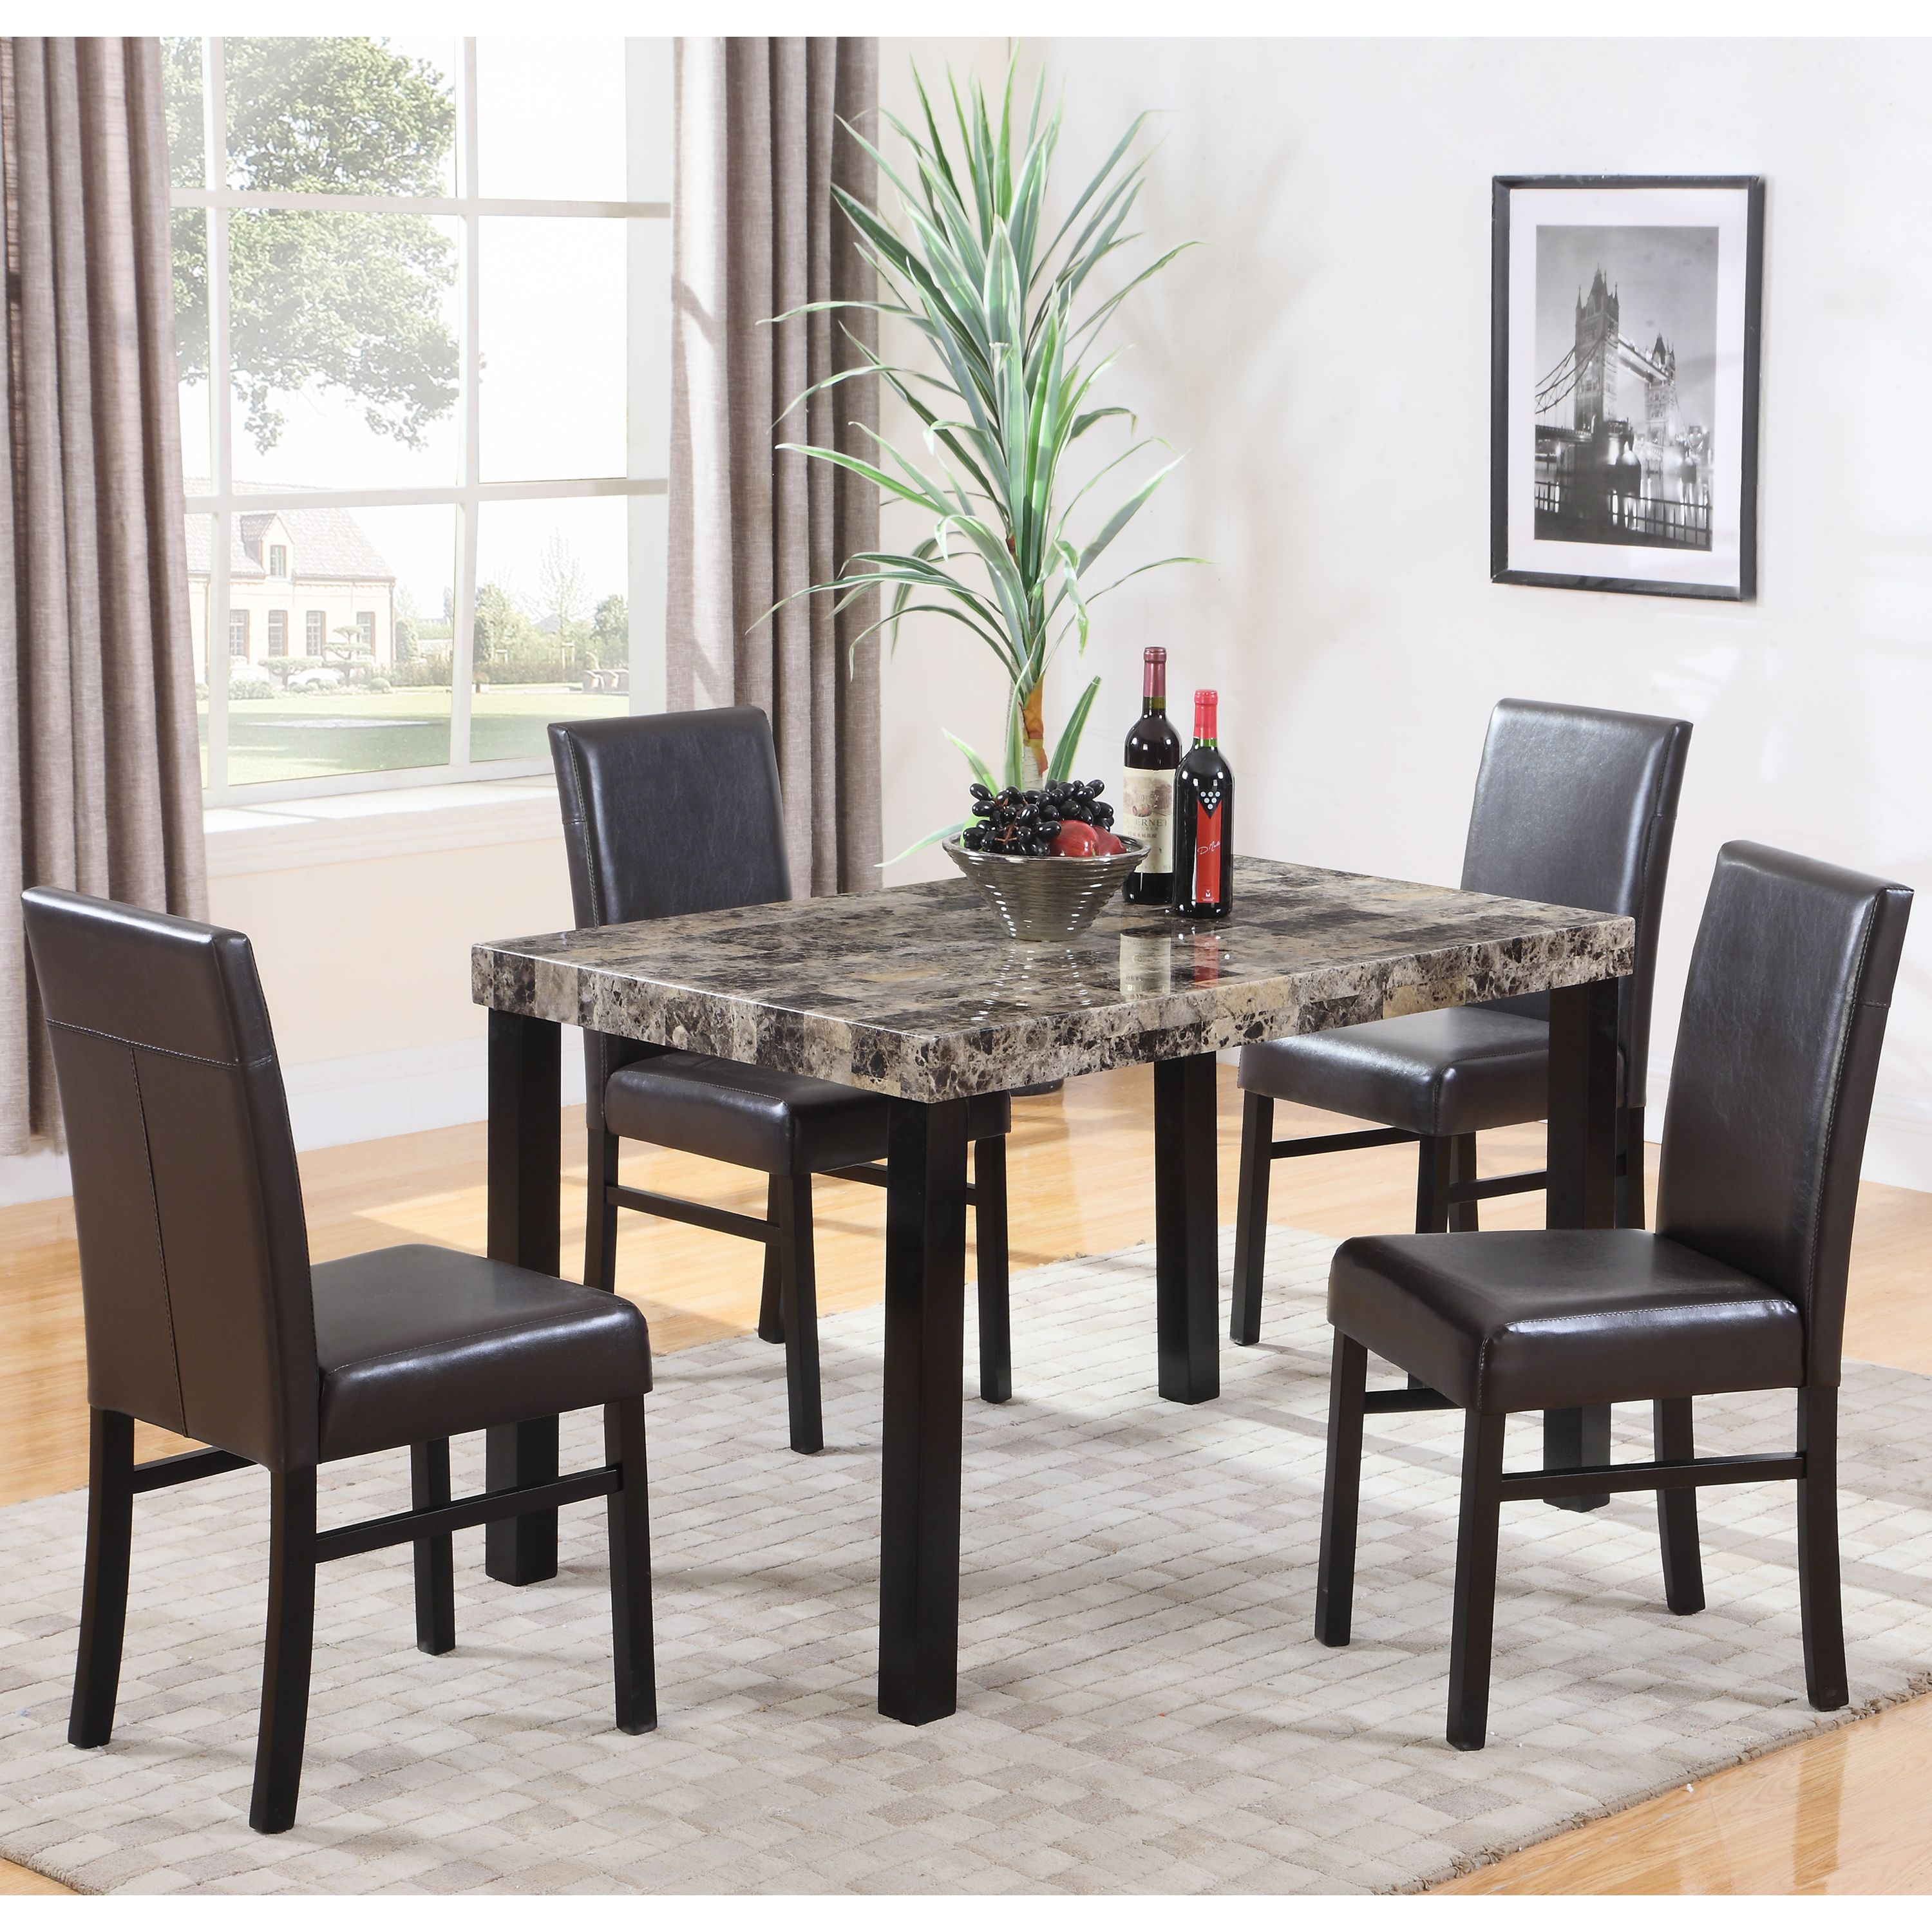 Best Master Furniture's Britney Marble Look 5 Pcs Dining Set